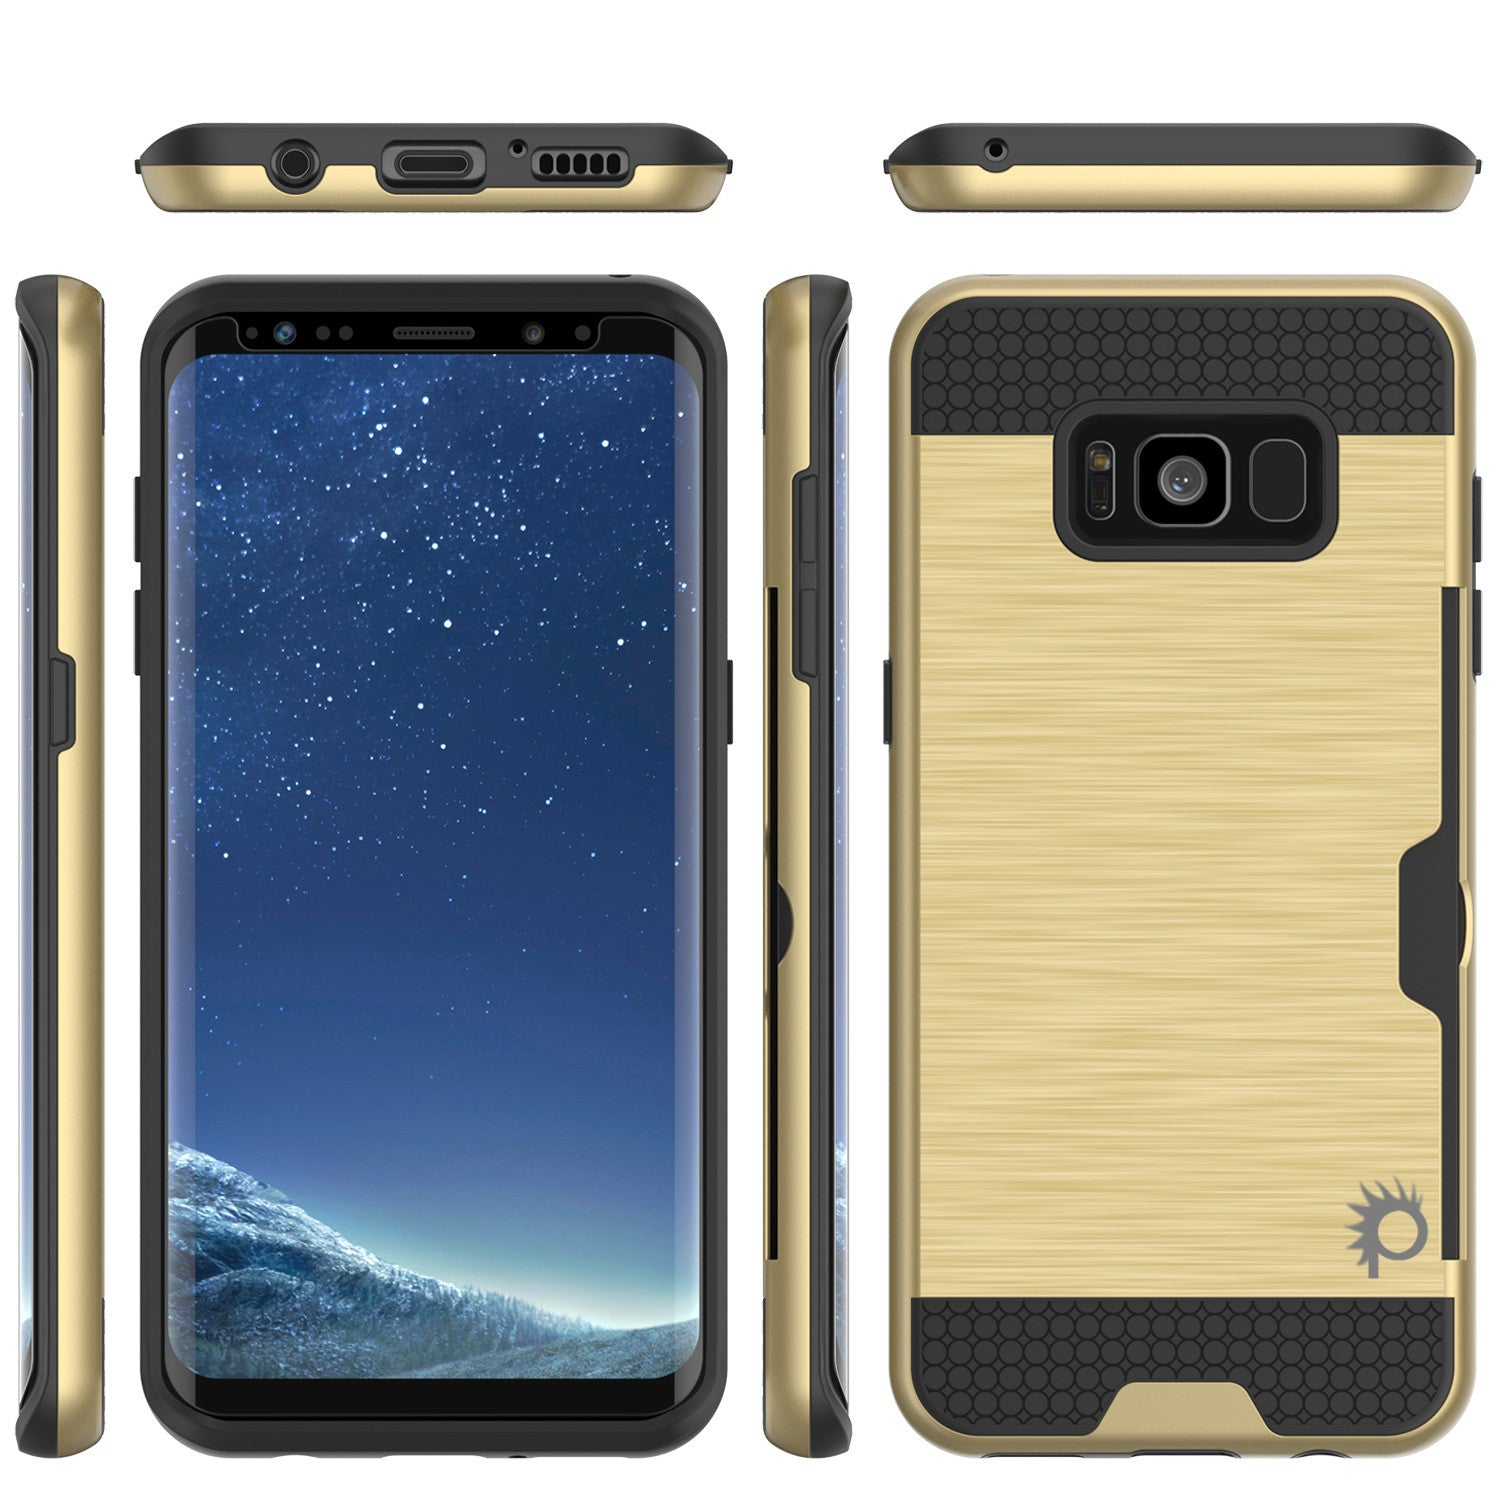 Galaxy S8 Case, PUNKcase [SLOT Series] [Slim Fit] Dual-Layer Armor Cover w/Integrated Anti-Shock System, Credit Card Slot & PUNKSHIELD Screen Protector for Samsung Galaxy S8 [Gold]